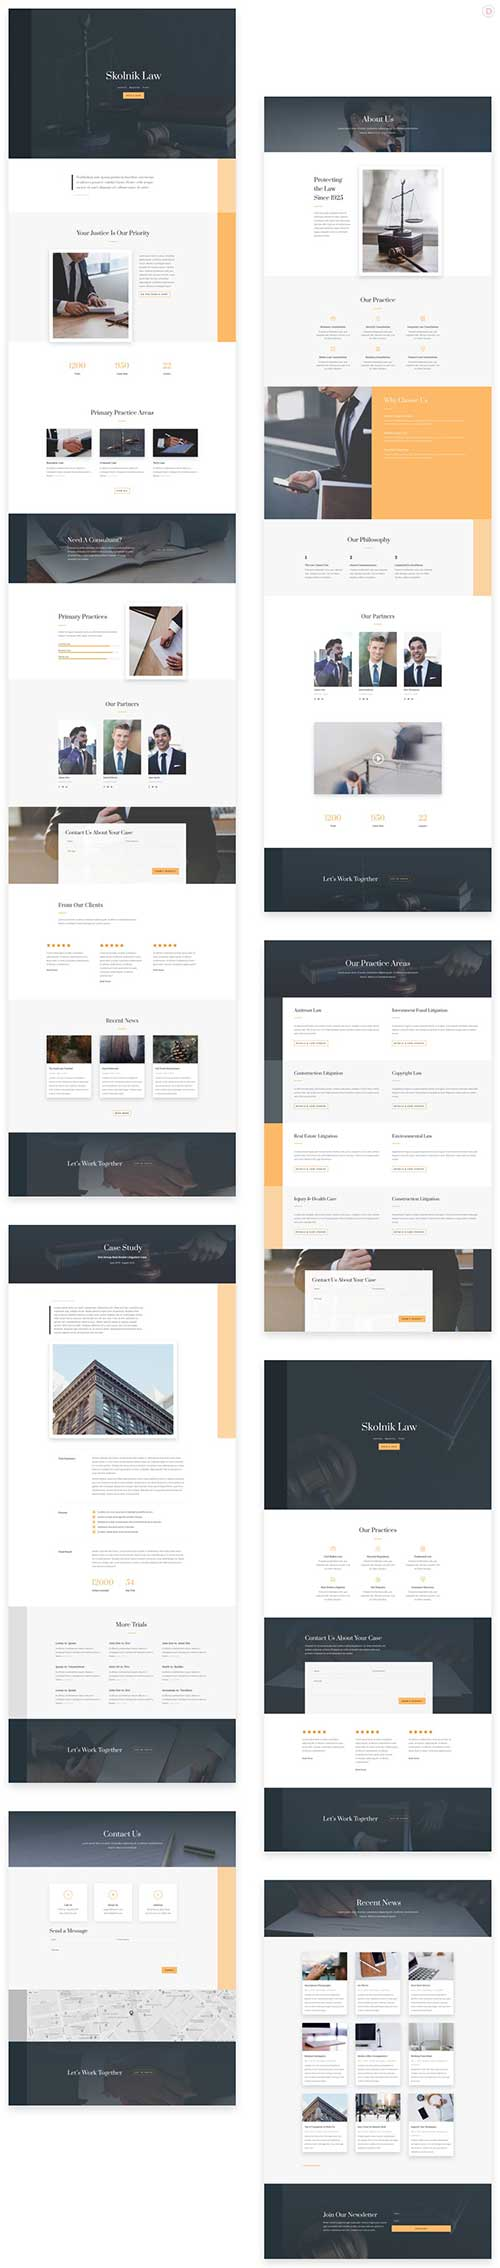 divi layout for law firm attorney